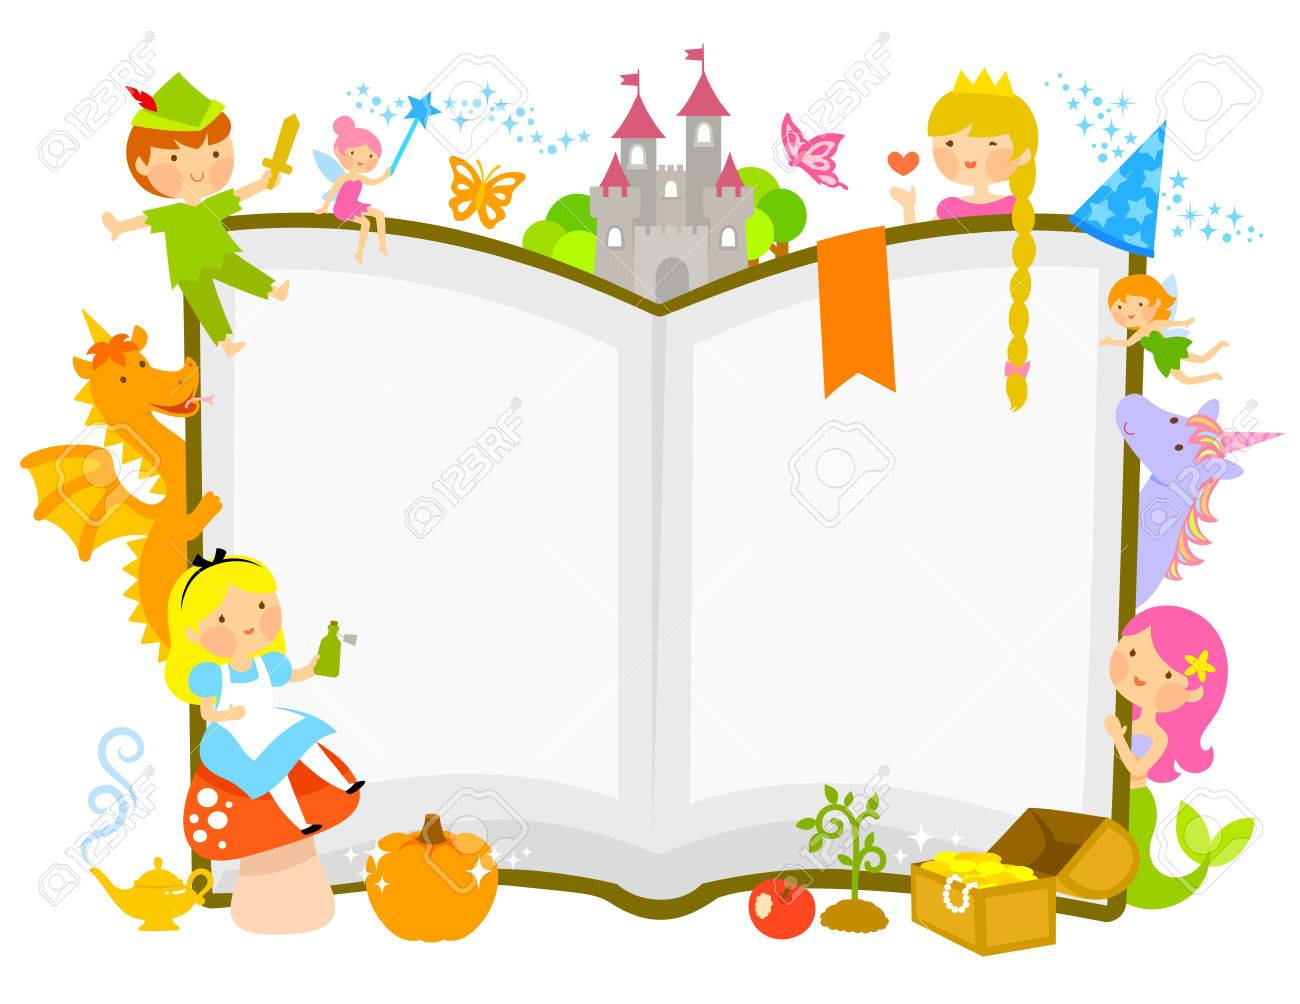 characters of fairytales around an open book - 68882518